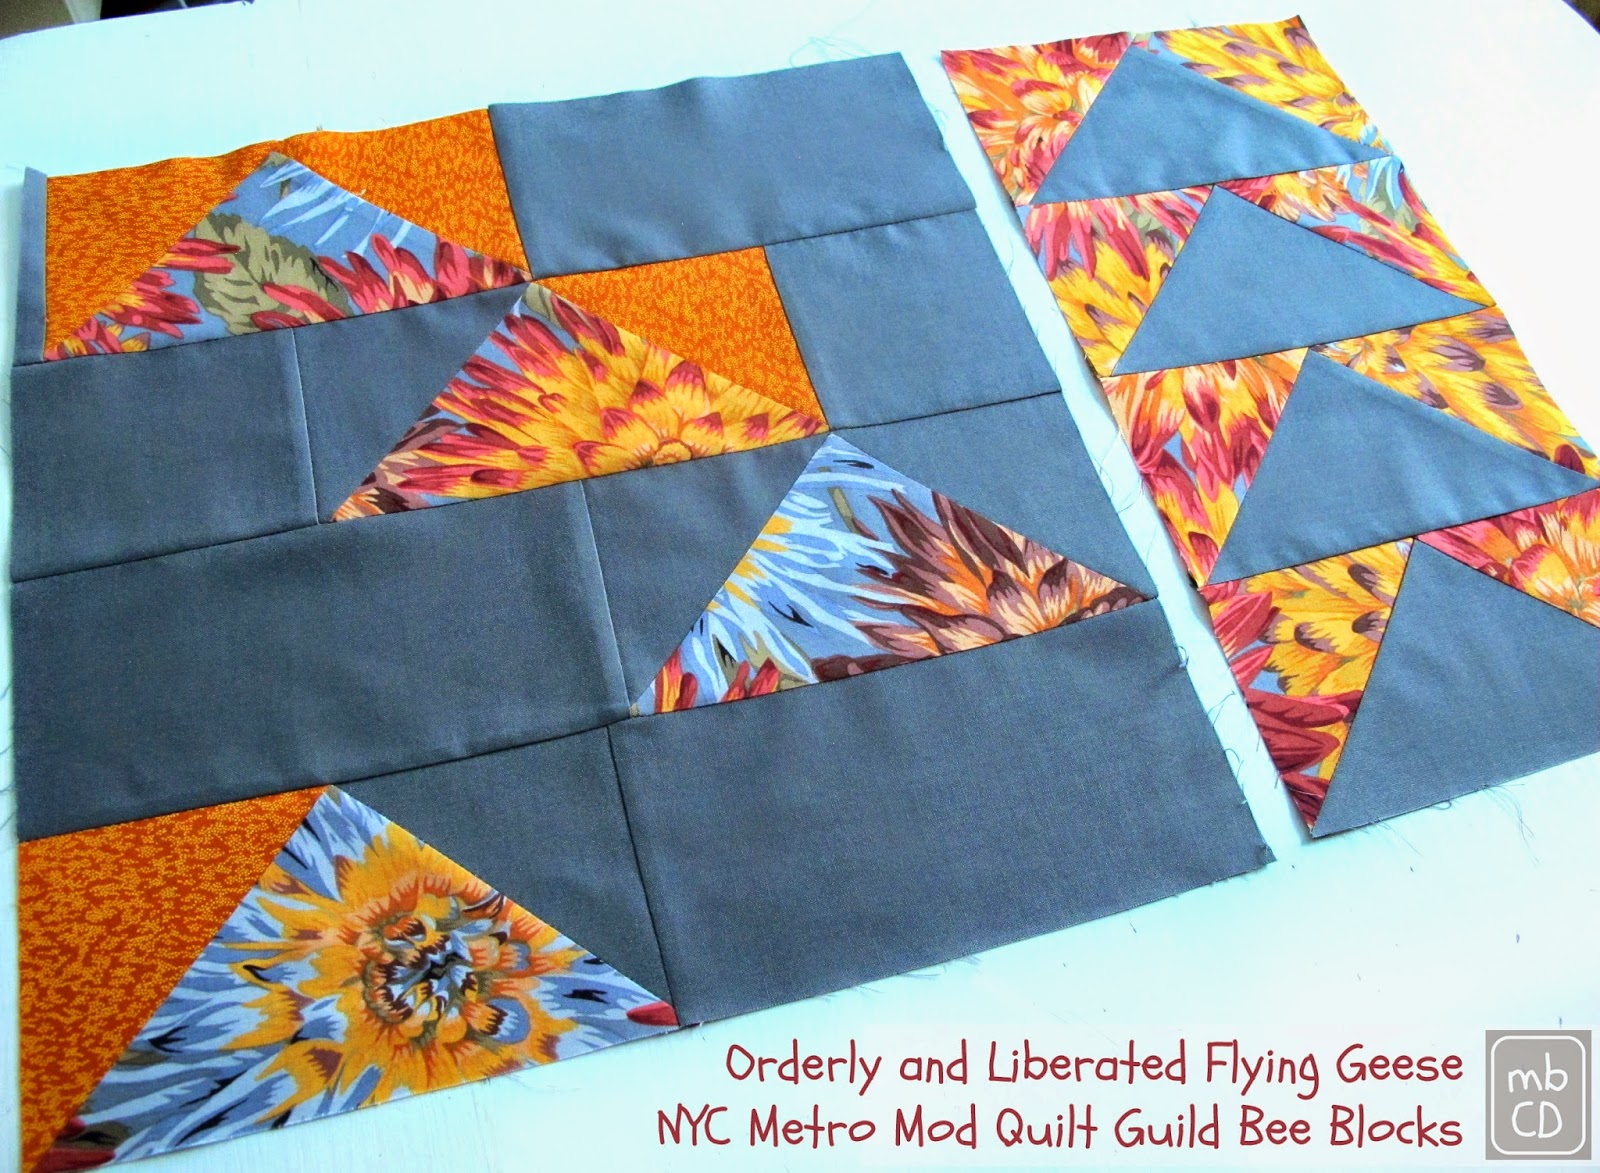 Chris Dodsley @mbCD: Orderly and Liberated Flying Geese - NYC ... : mod quilt - Adamdwight.com